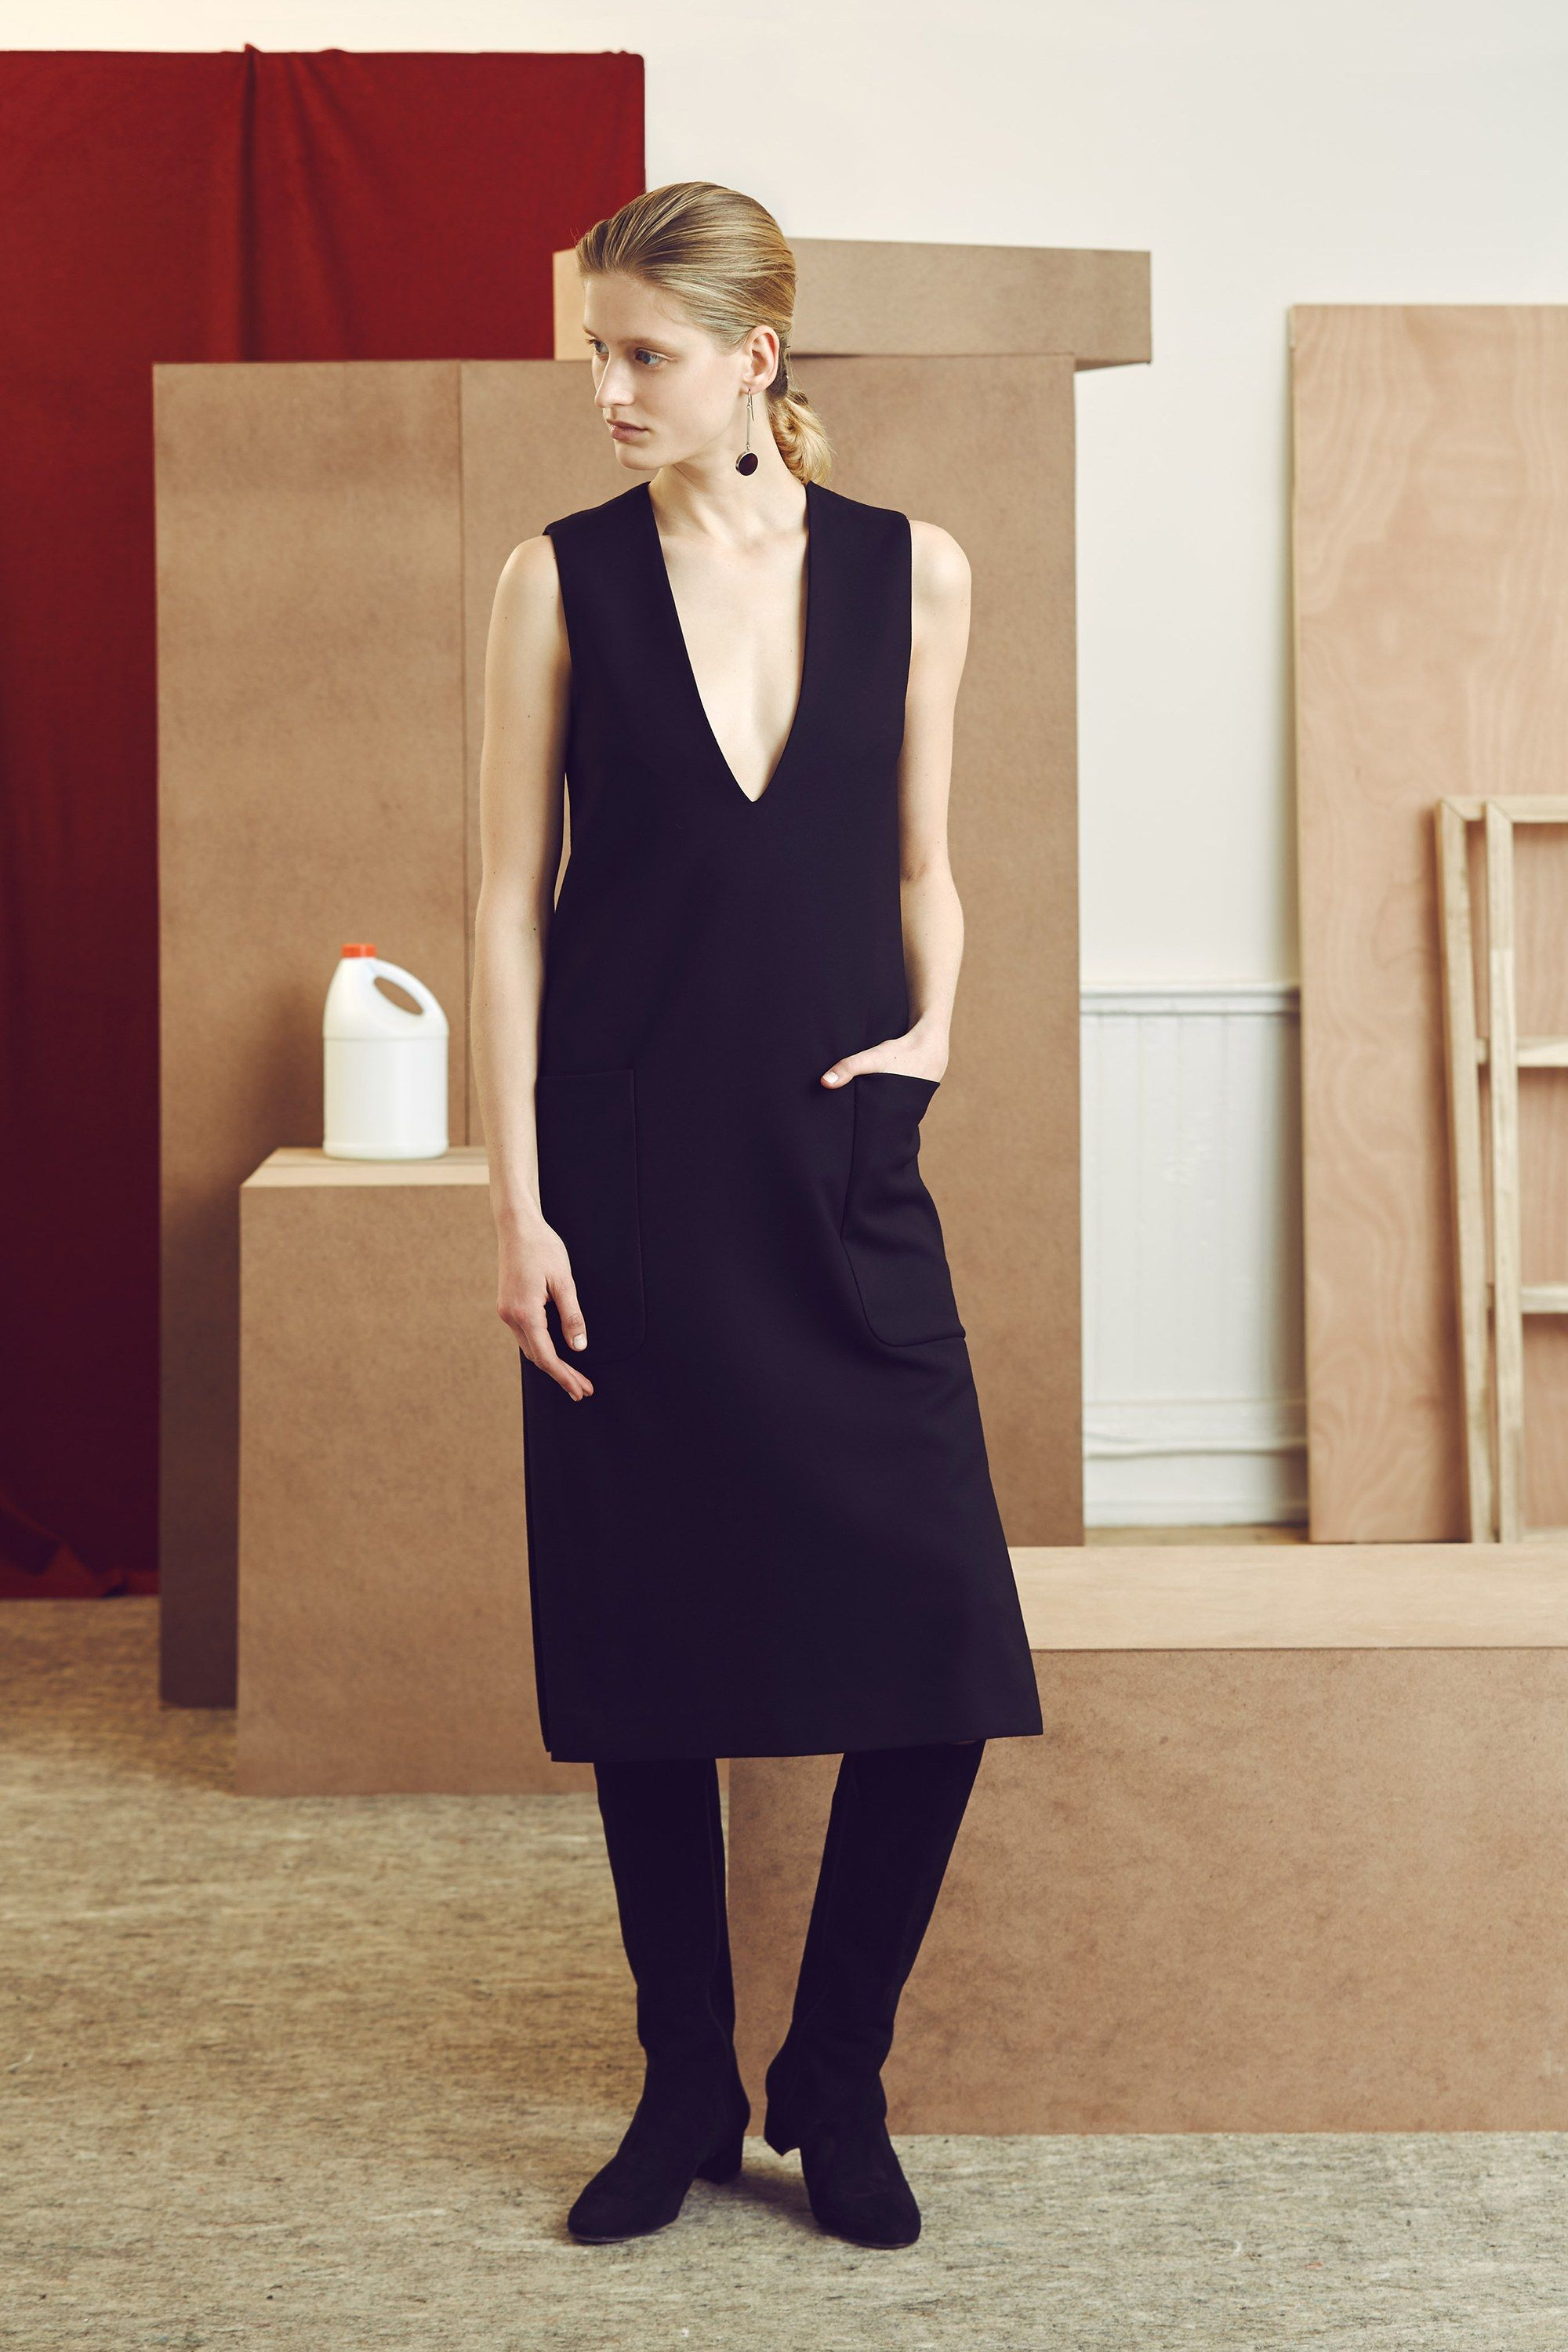 Protagonist Fall 2016 Ready-to-Wear Collection Photos - Vogue